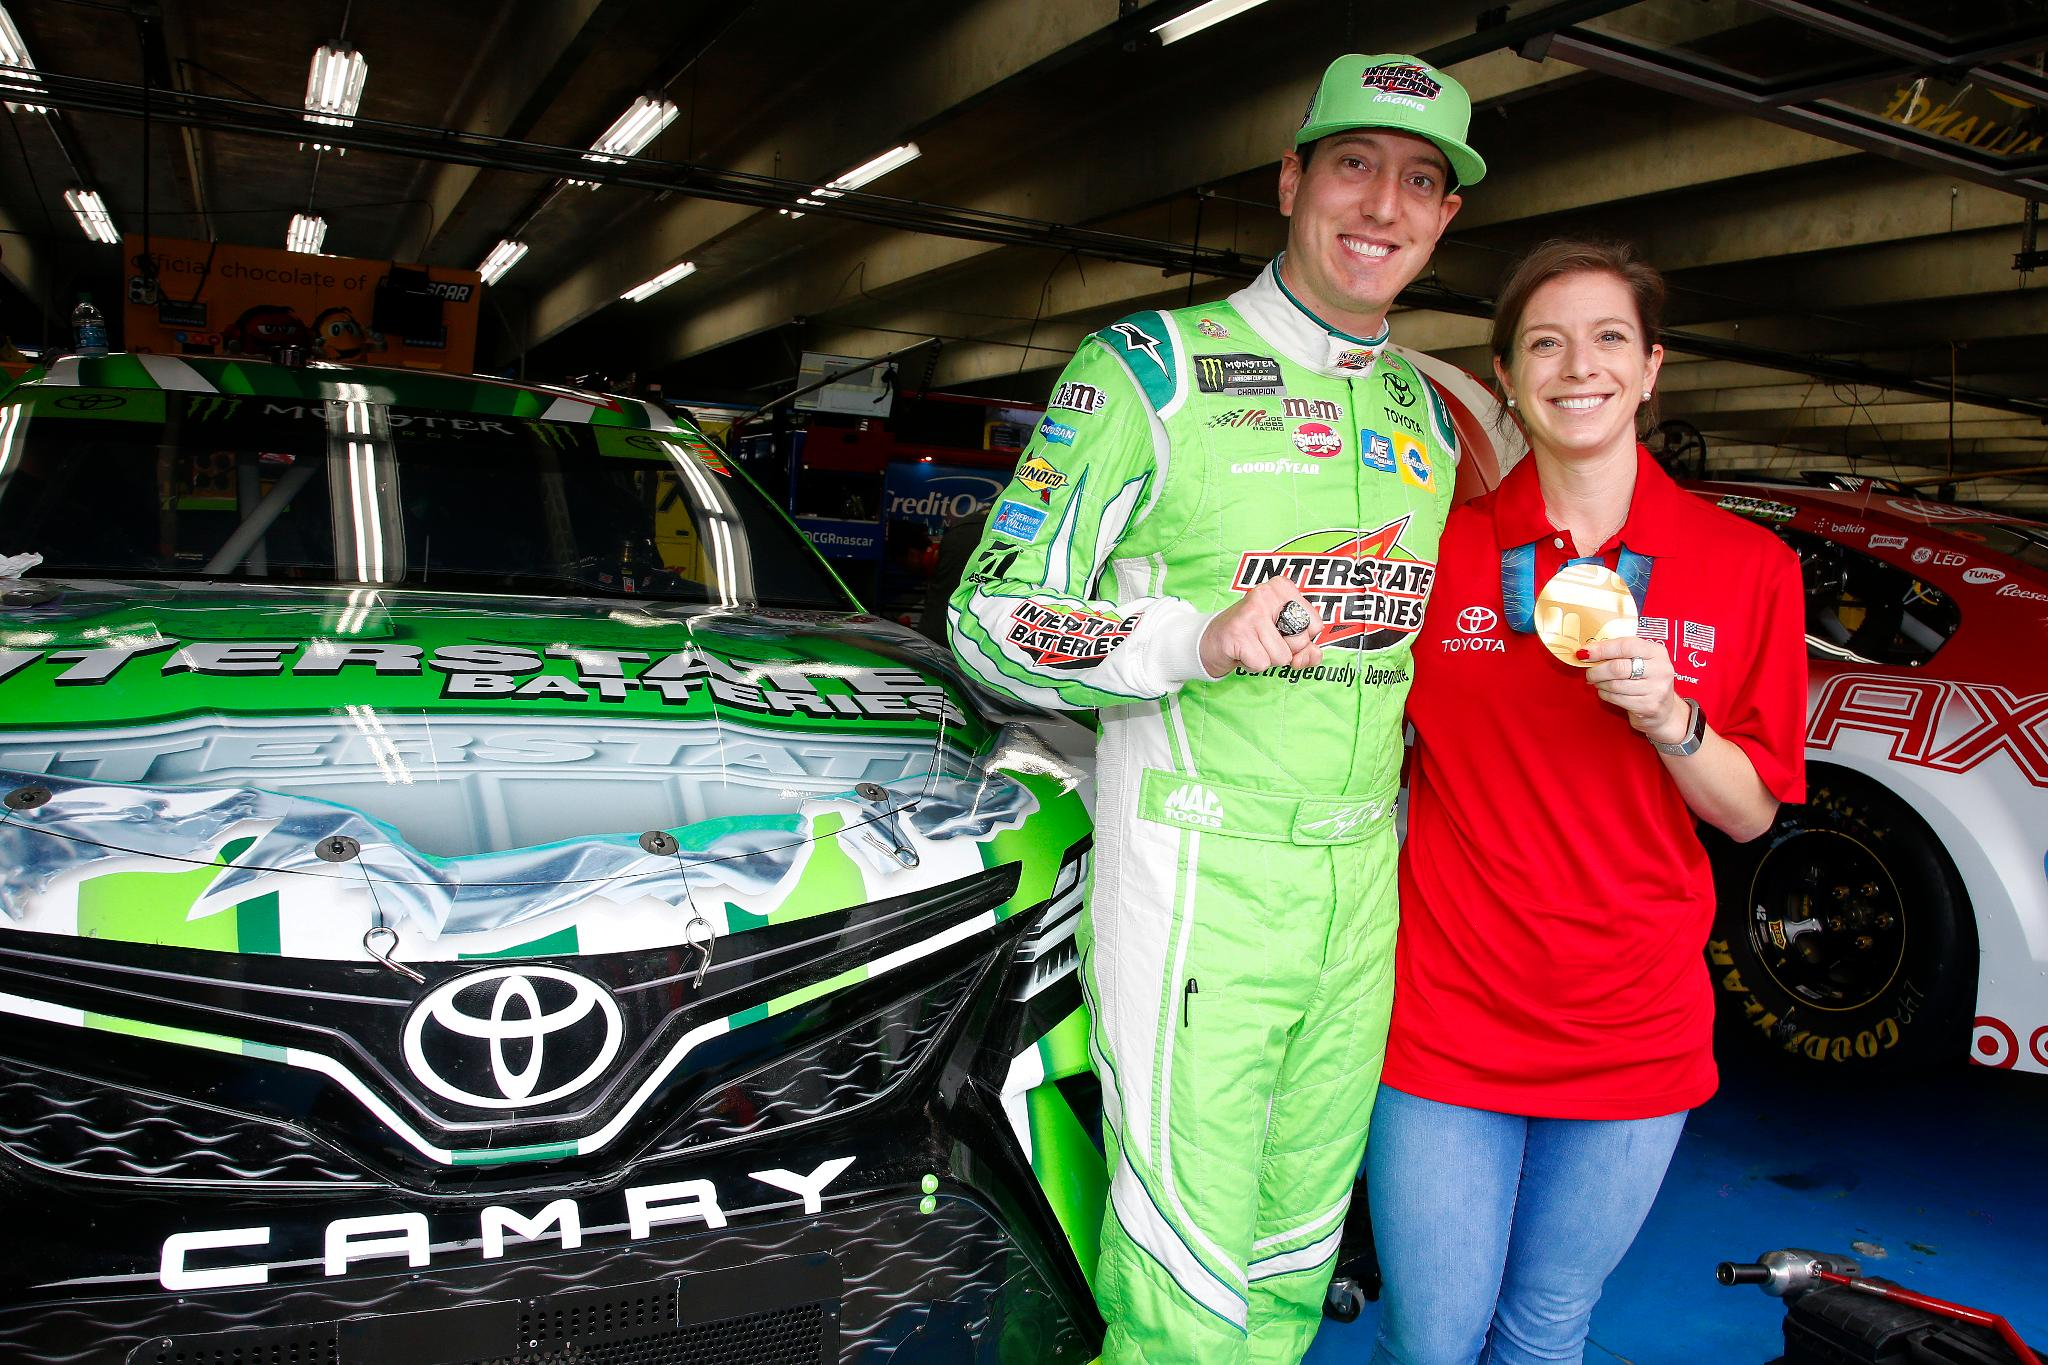 U.S. Olympic gold medalist @hk_ski and @kylebusch show off their first place hardware. https://t.co/bd1LKHgUXU